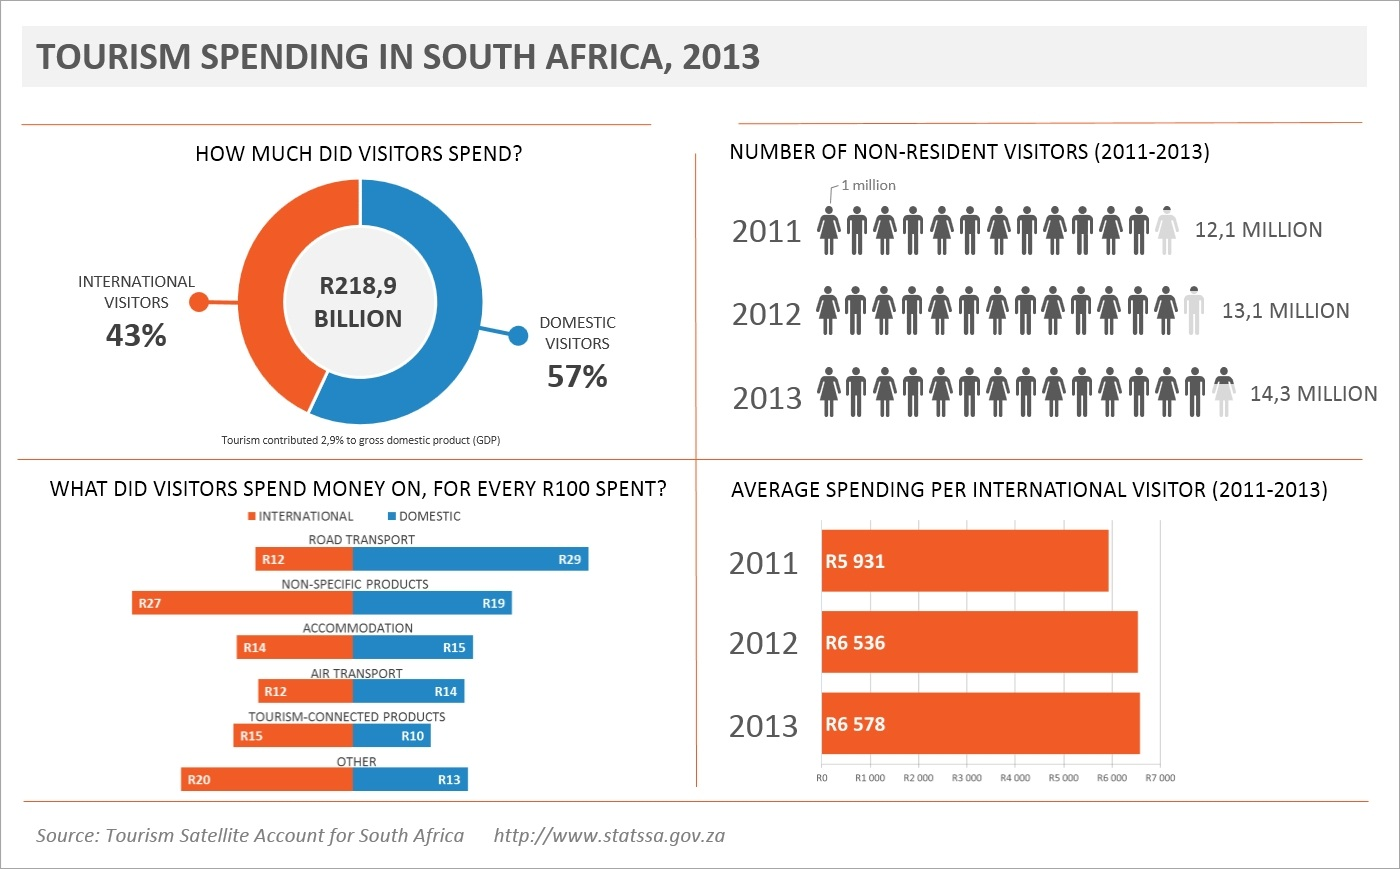 an economic look at the tourism industry statistics south africa tsa infographic slider v04